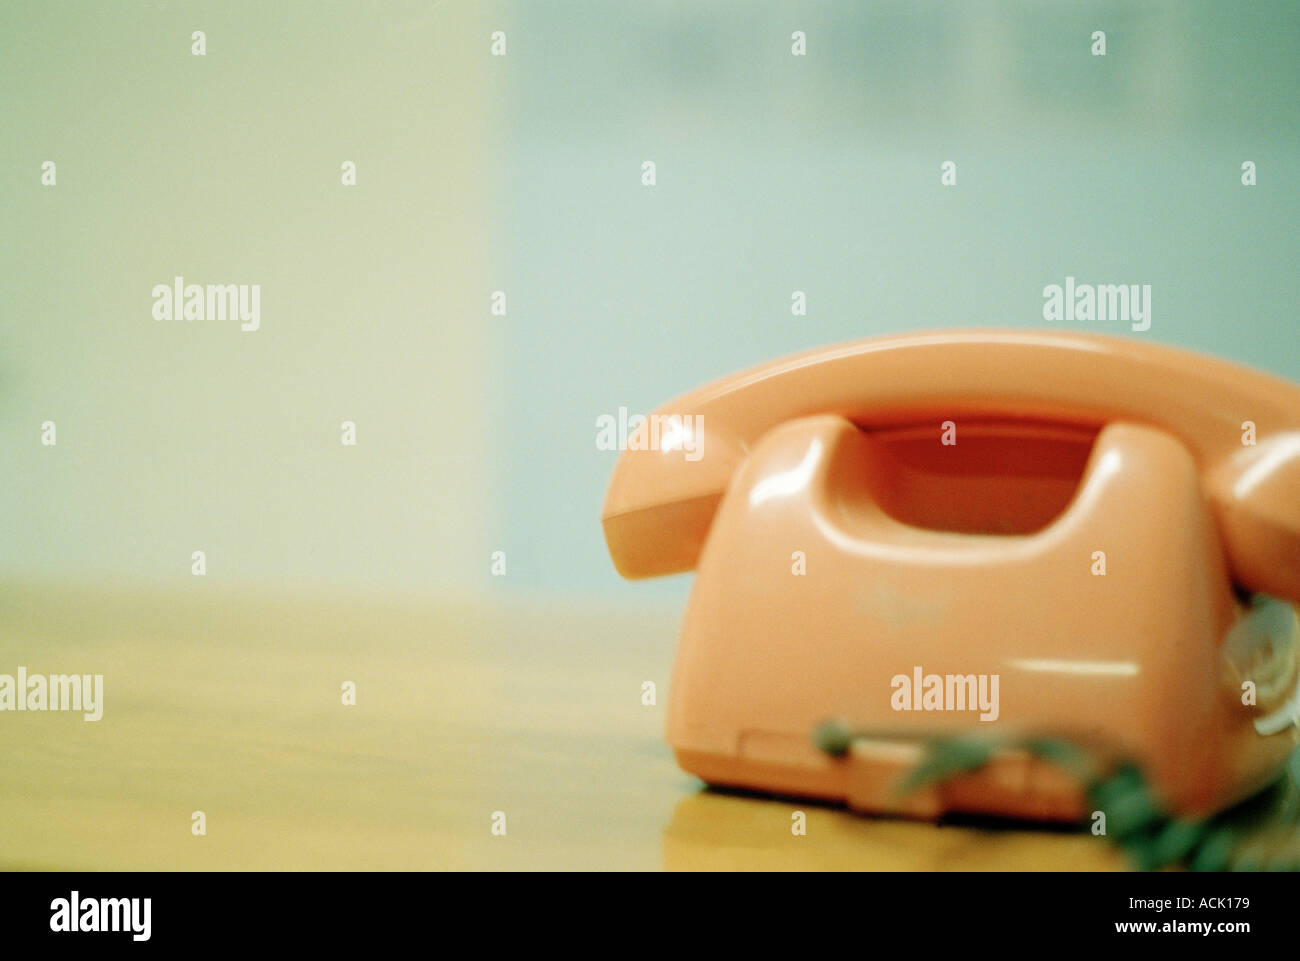 A retro telephone resting on a table - Stock Image